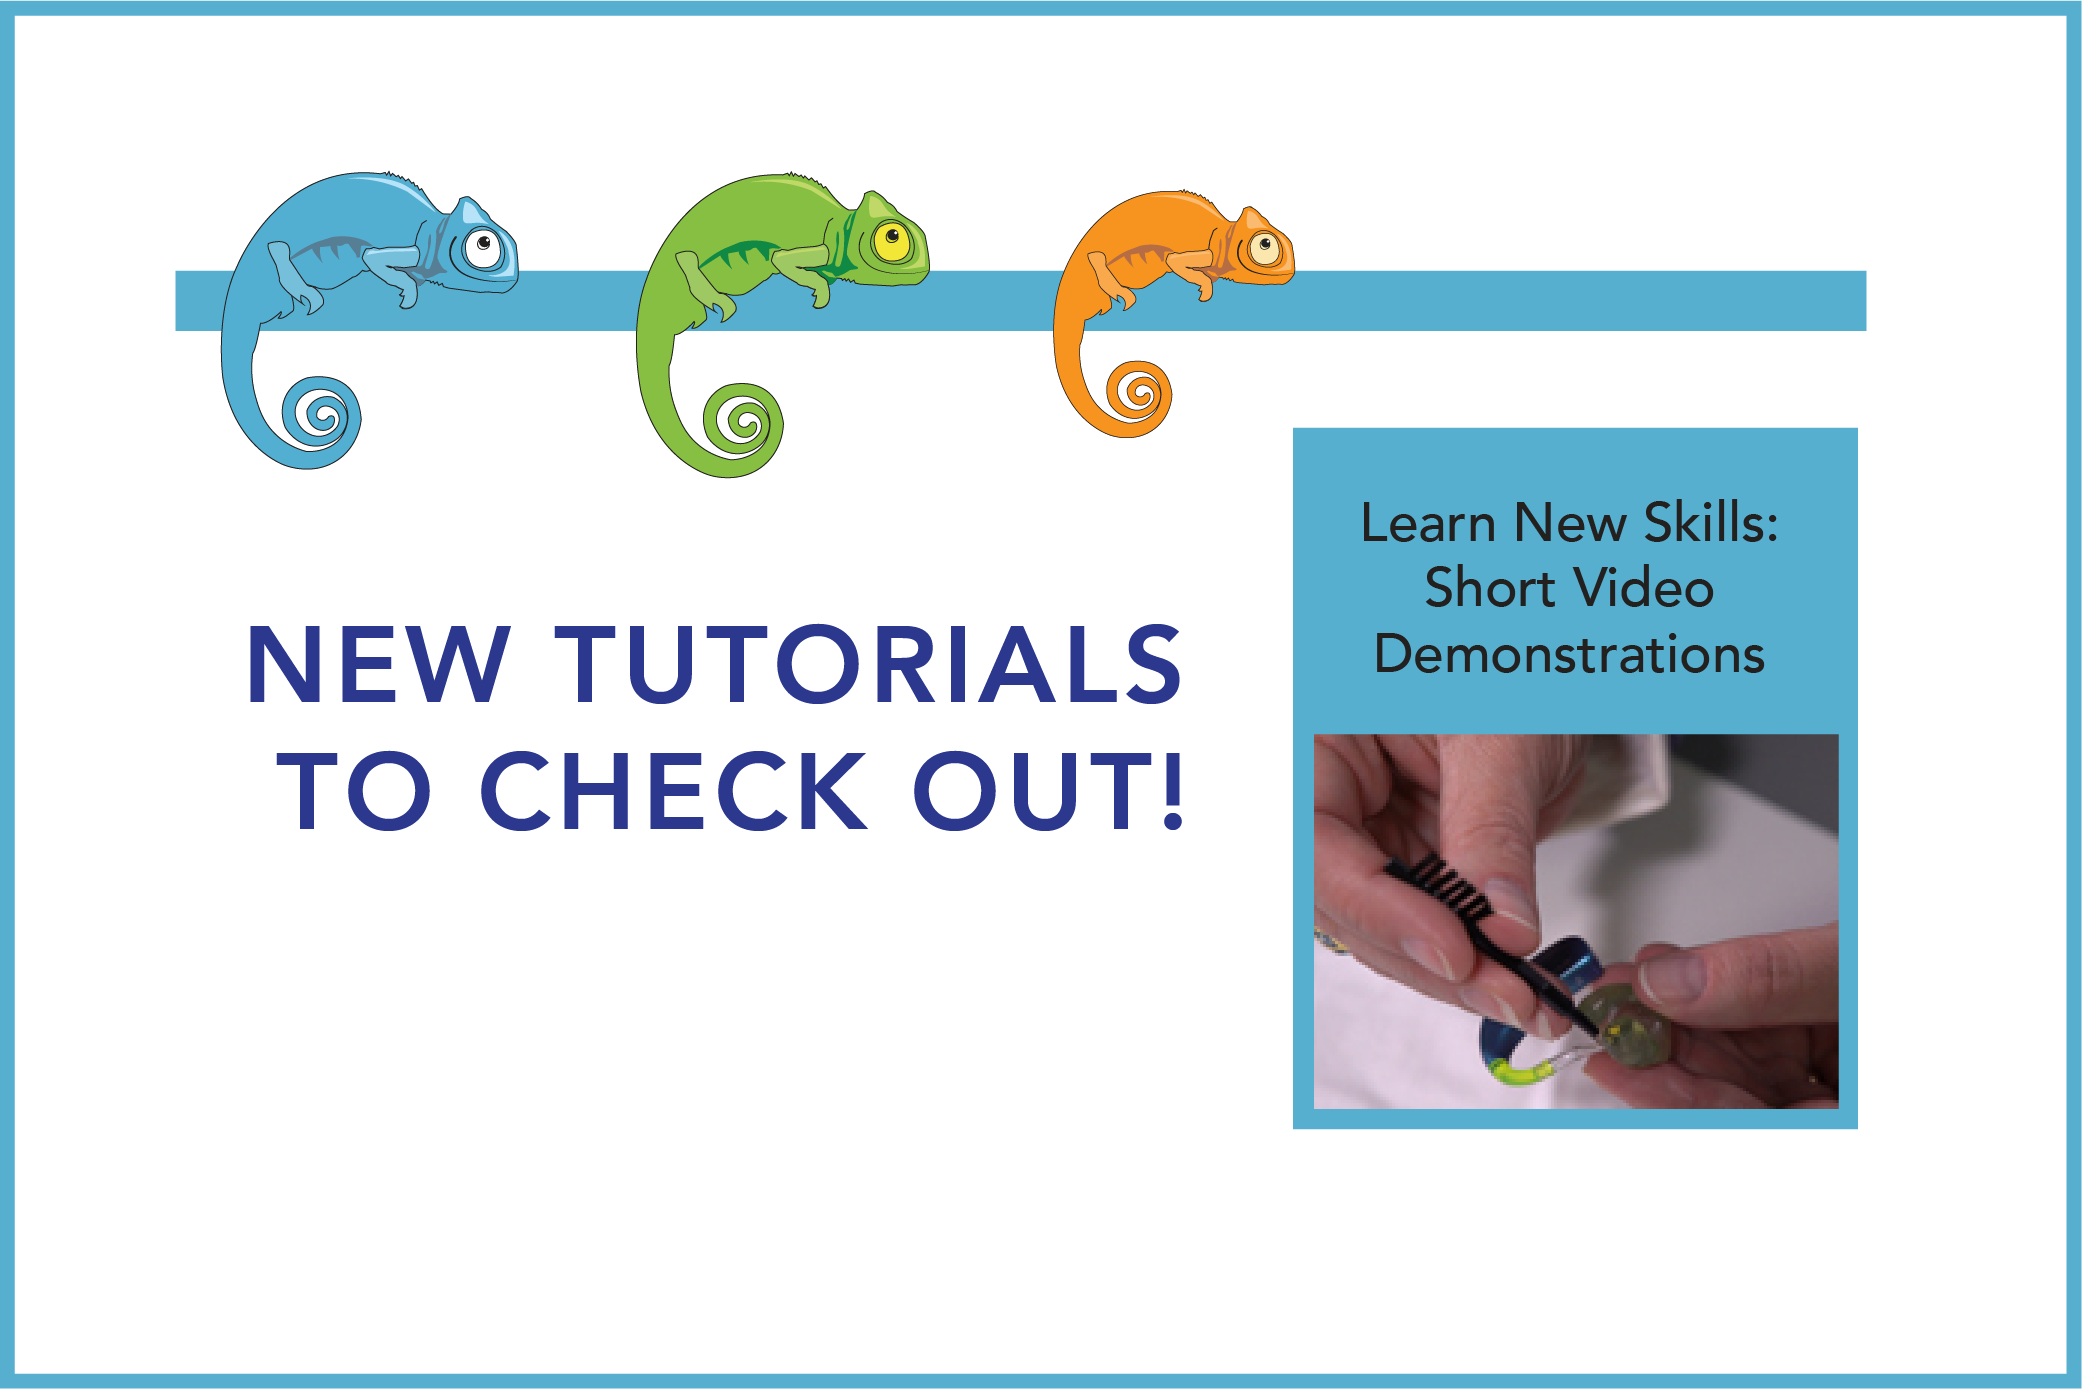 New Tutorials to Check Out! Learn New Skills: Short Video Demonstrations